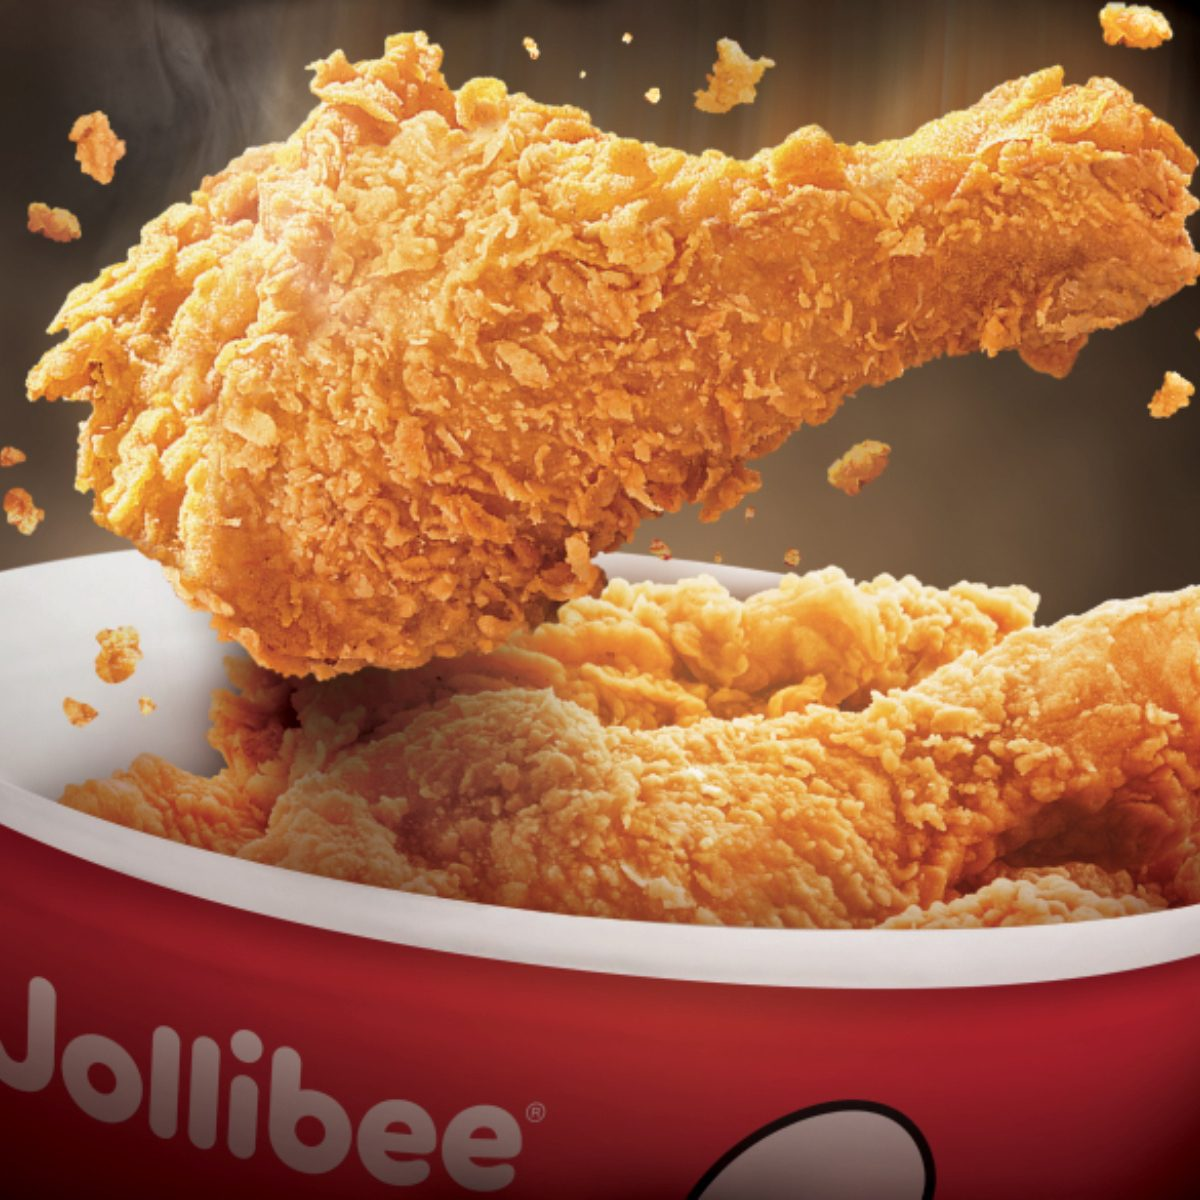 Fried chicken falling into a bucket